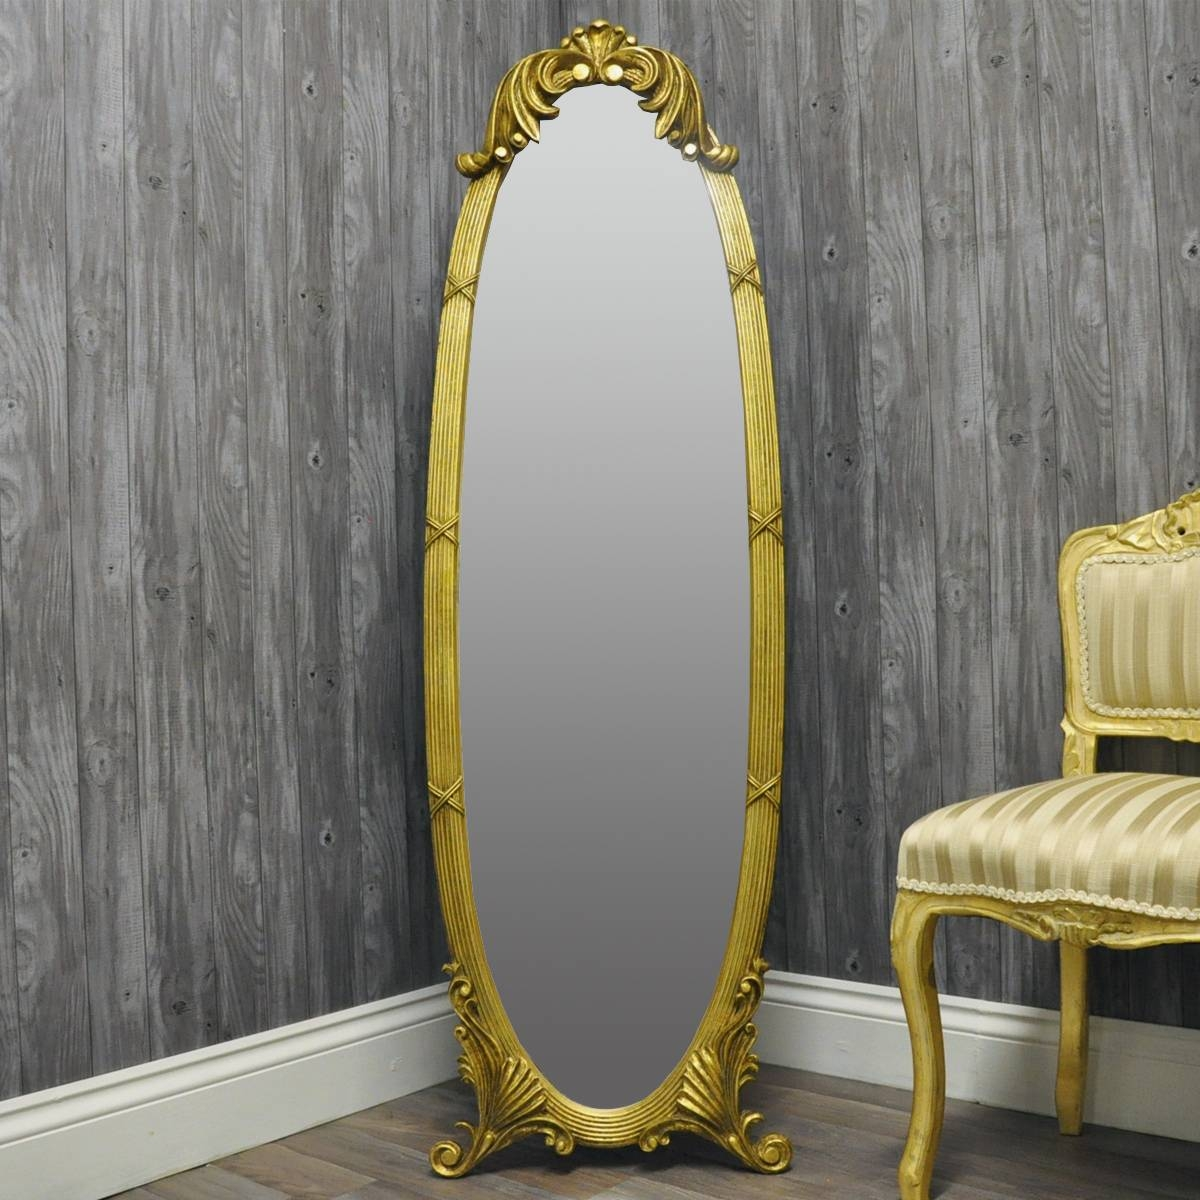 Choose From A Range Of Full Length Cheval Mirrors Intended For Gold Full Length Mirrors (View 4 of 15)